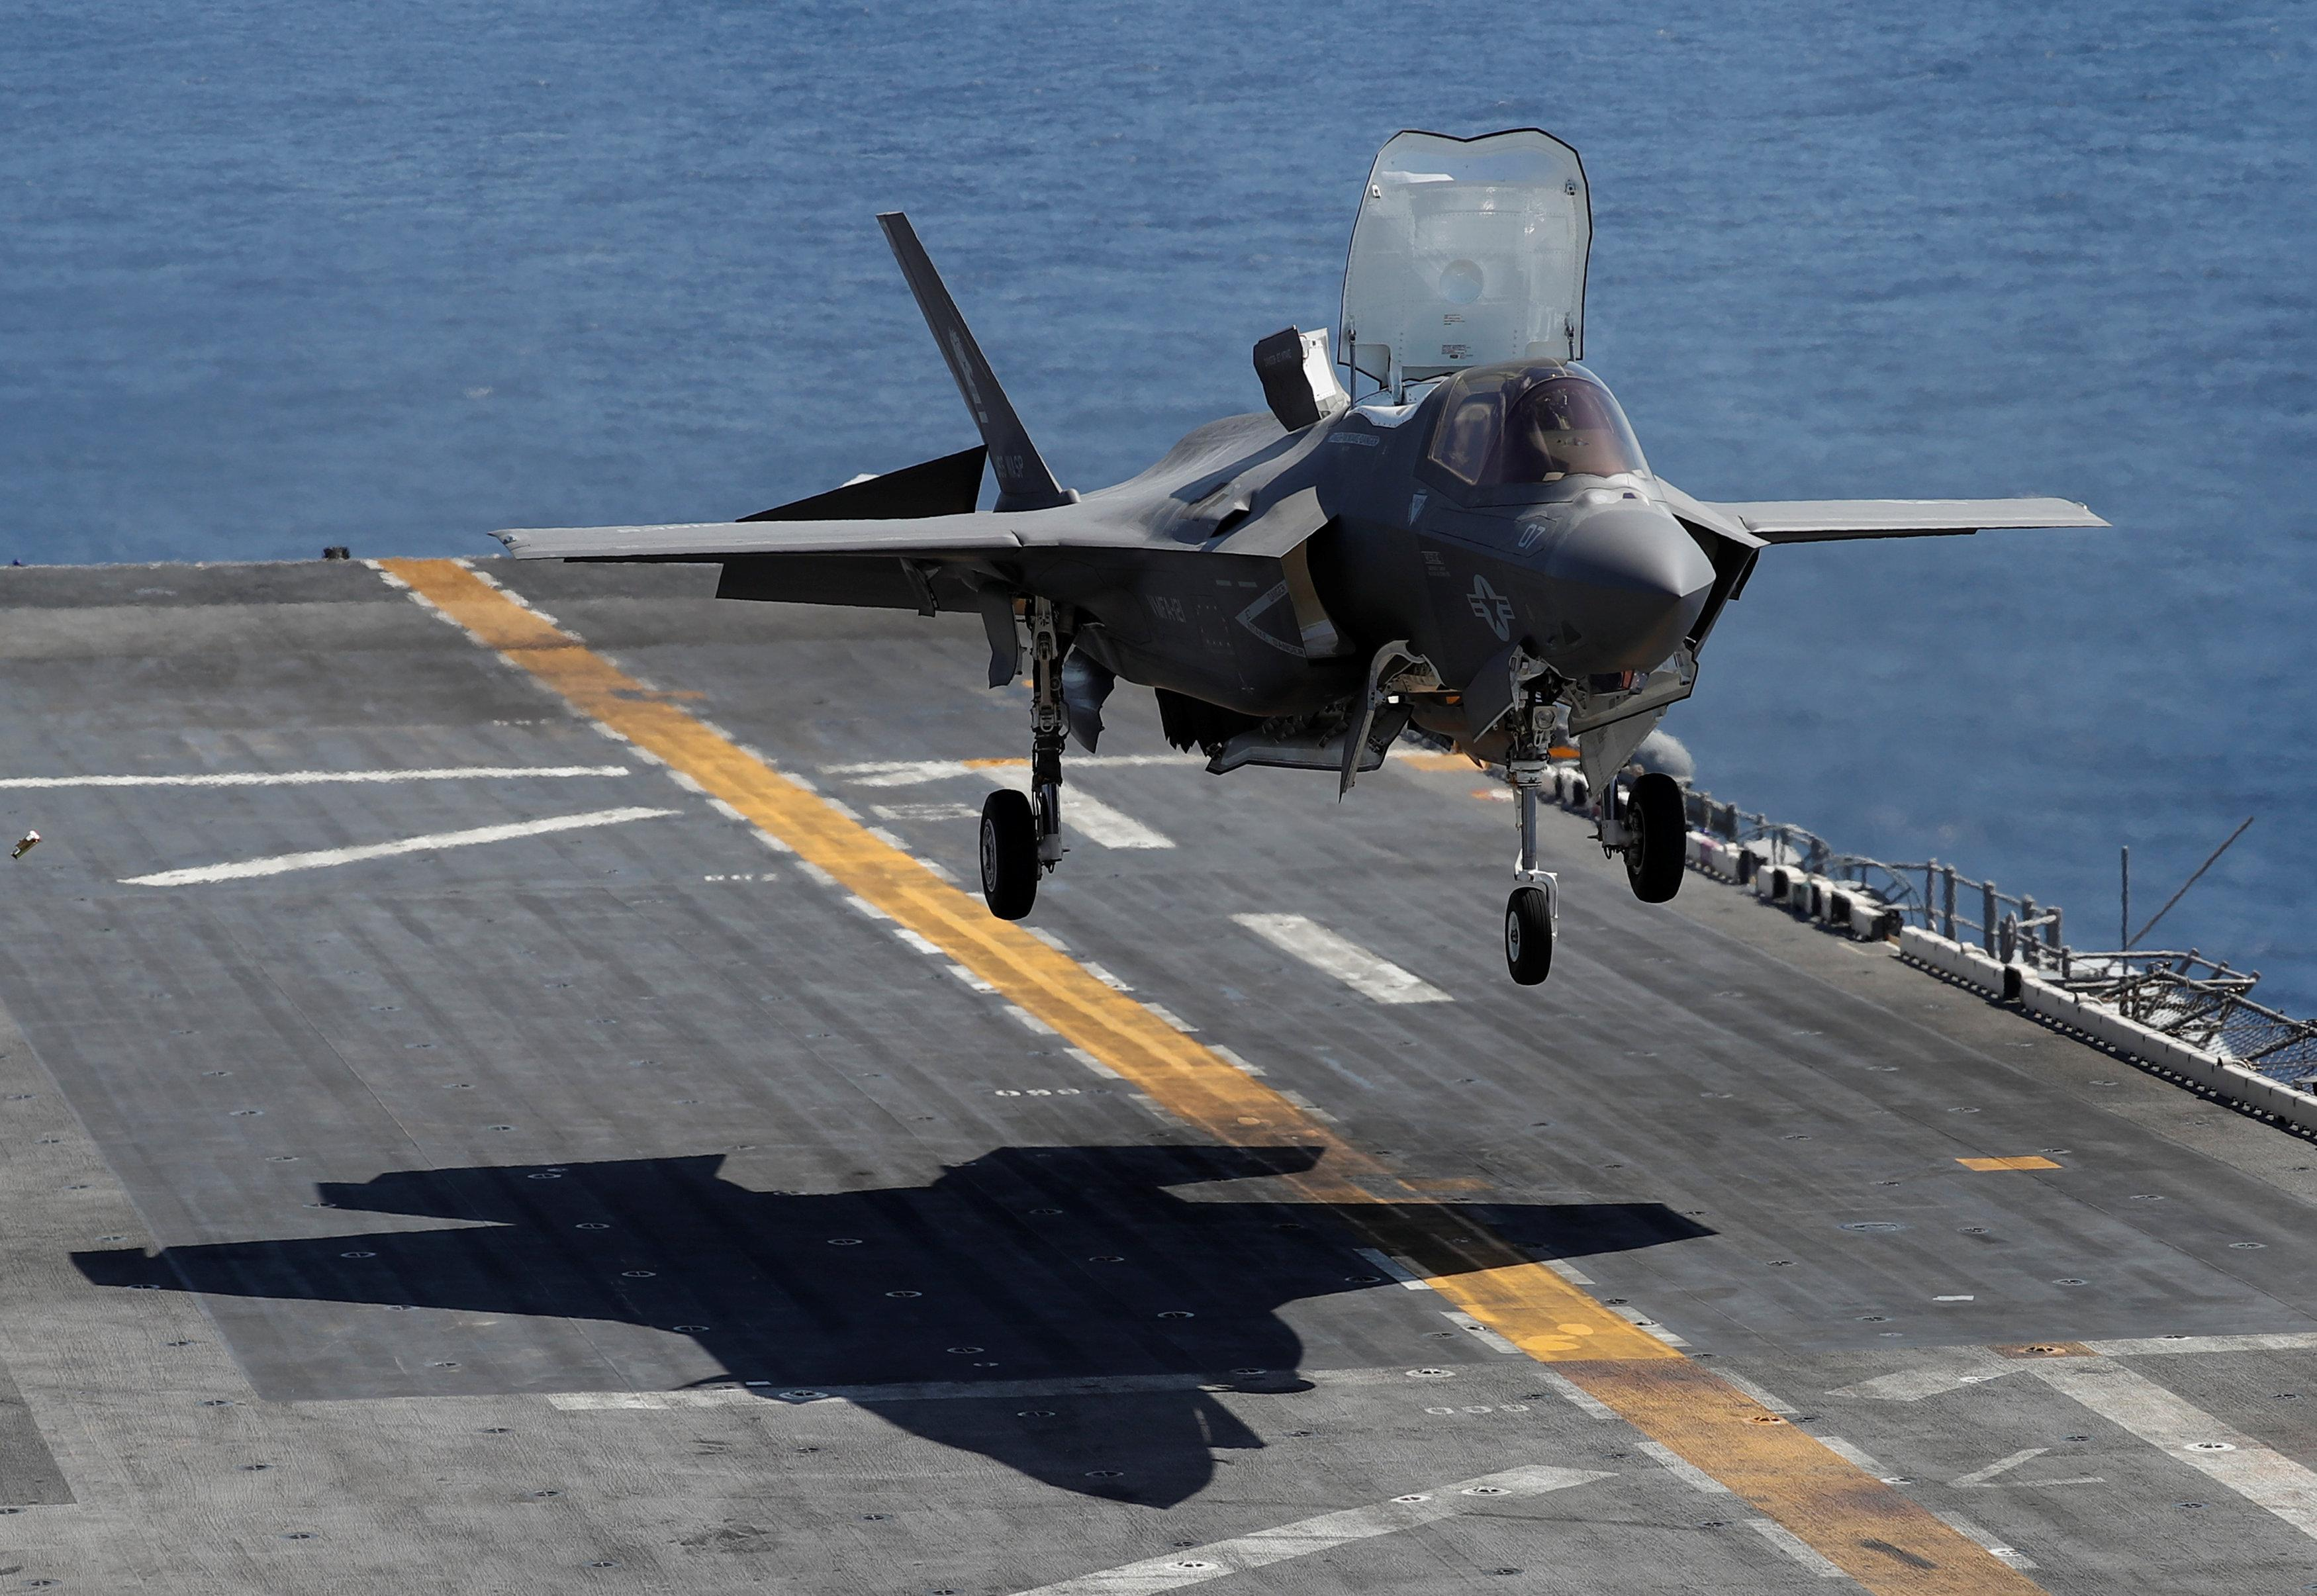 A Marine Corps pilot prepares for a vertical landing of Lockheed Martin F-35B stealth fighter aboard the USS Wasp amphibious assault carrier during their operation in the waters off Japan